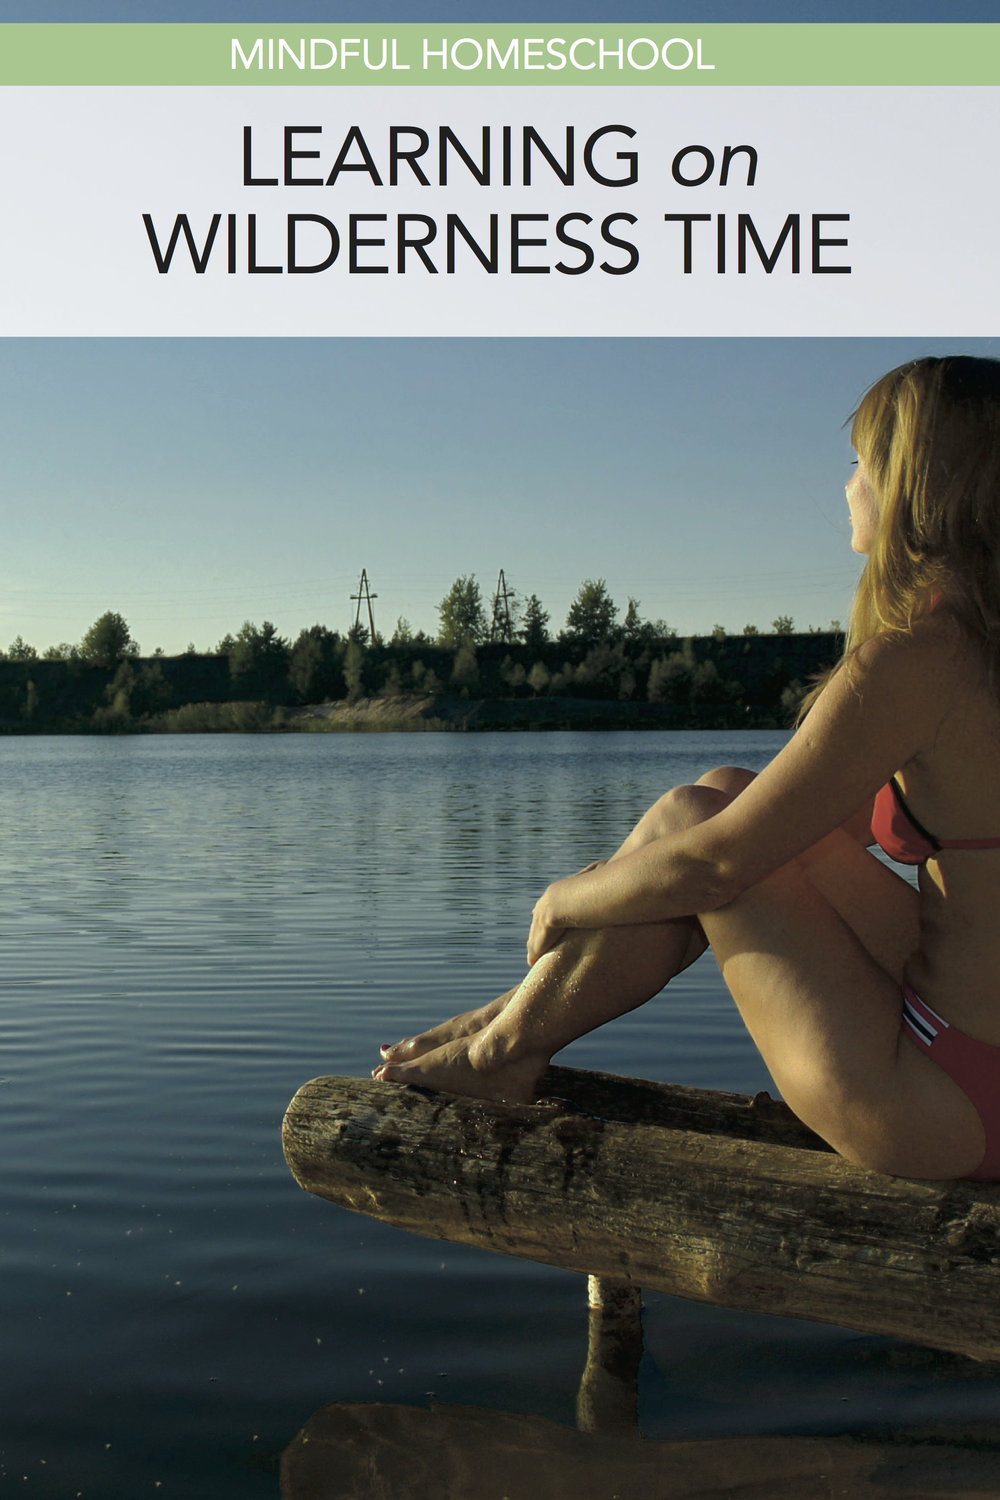 Mindful Homeschool: Living and learning on wilderness time